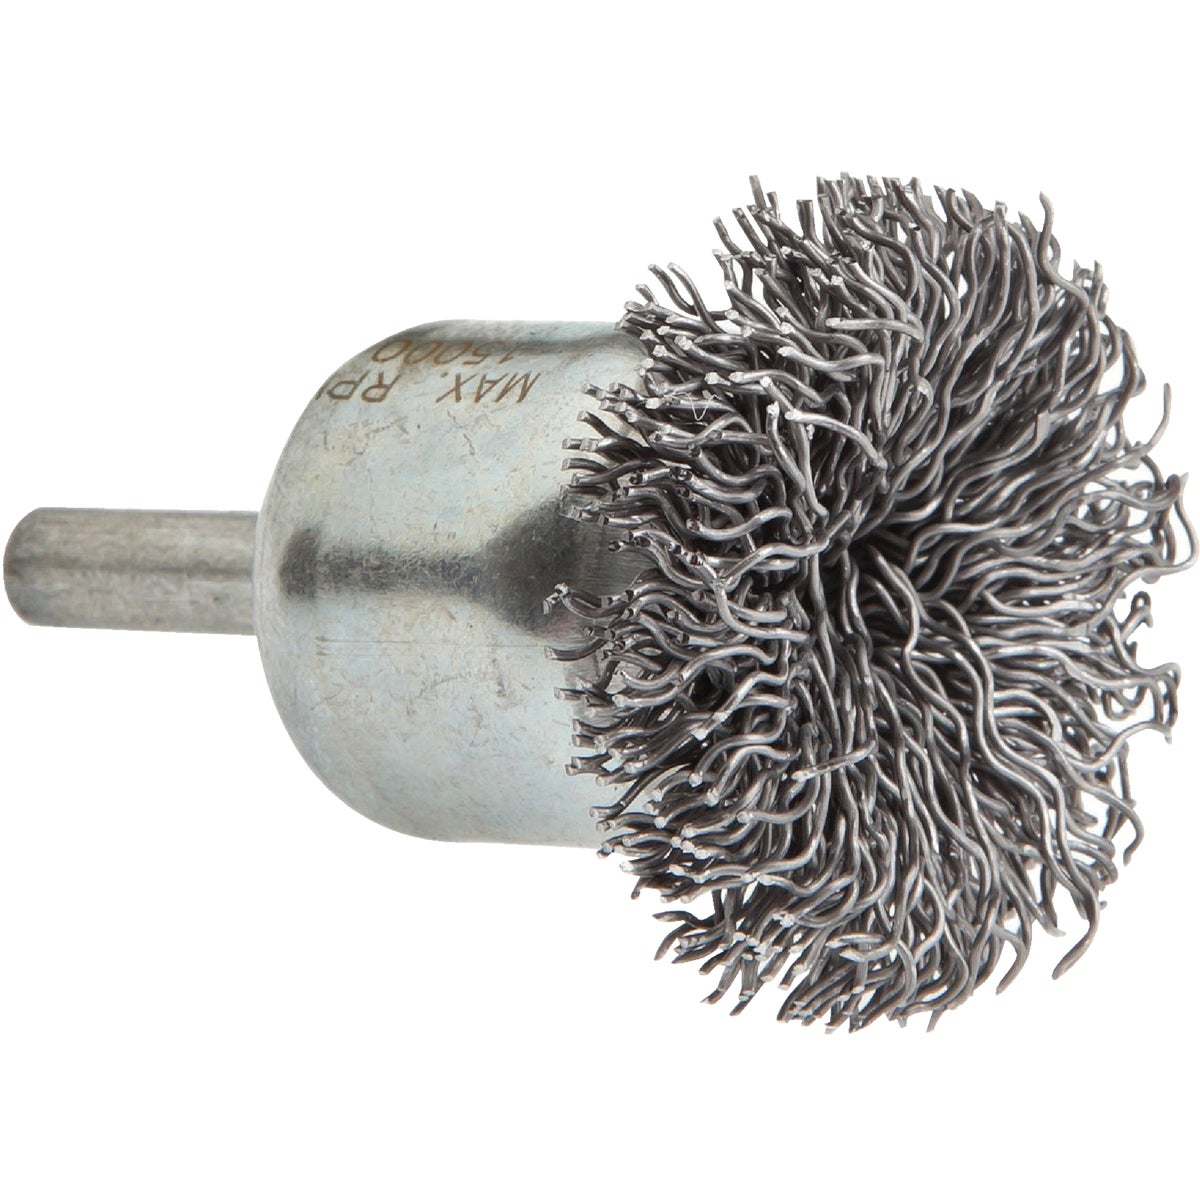 CRIMPED WIRE END BRUSH - 60003 by Forney Industries